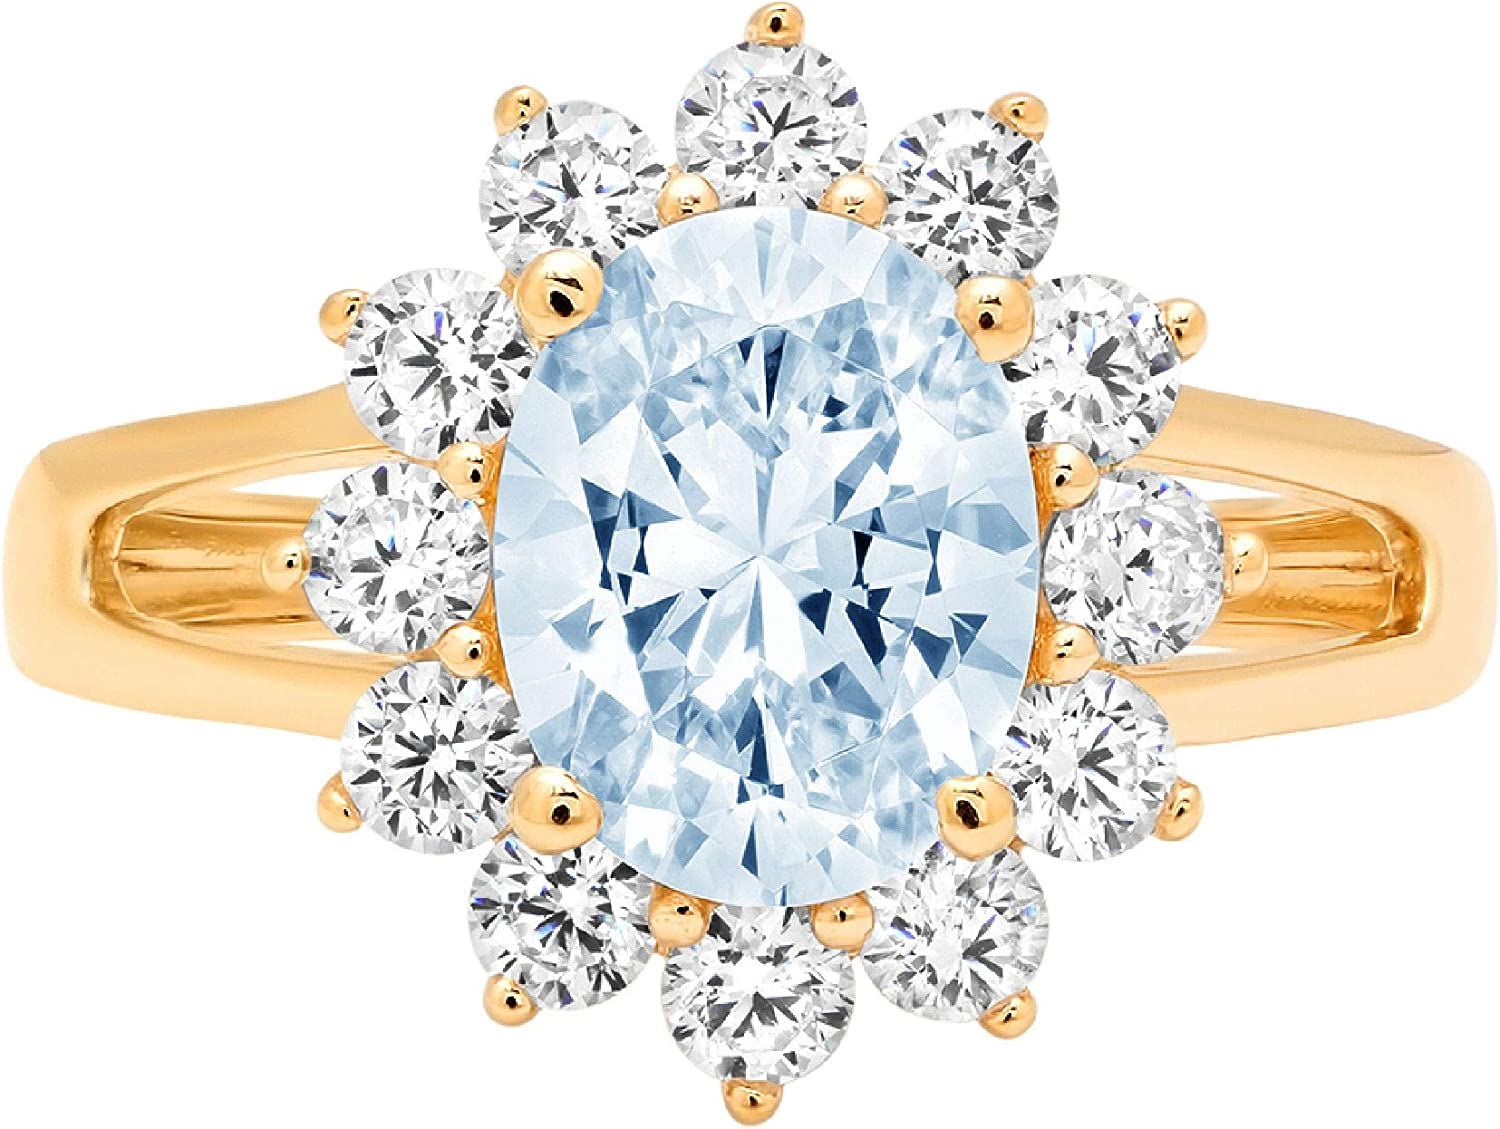 2.36ct Brilliant Oval Cut Solitaire Accent Halo Genuine Flawless Natural Sky Blue Topaz Gemstone Engagement Promise Anniversary Bridal Wedding Ring Solid 18K Yellow Gold